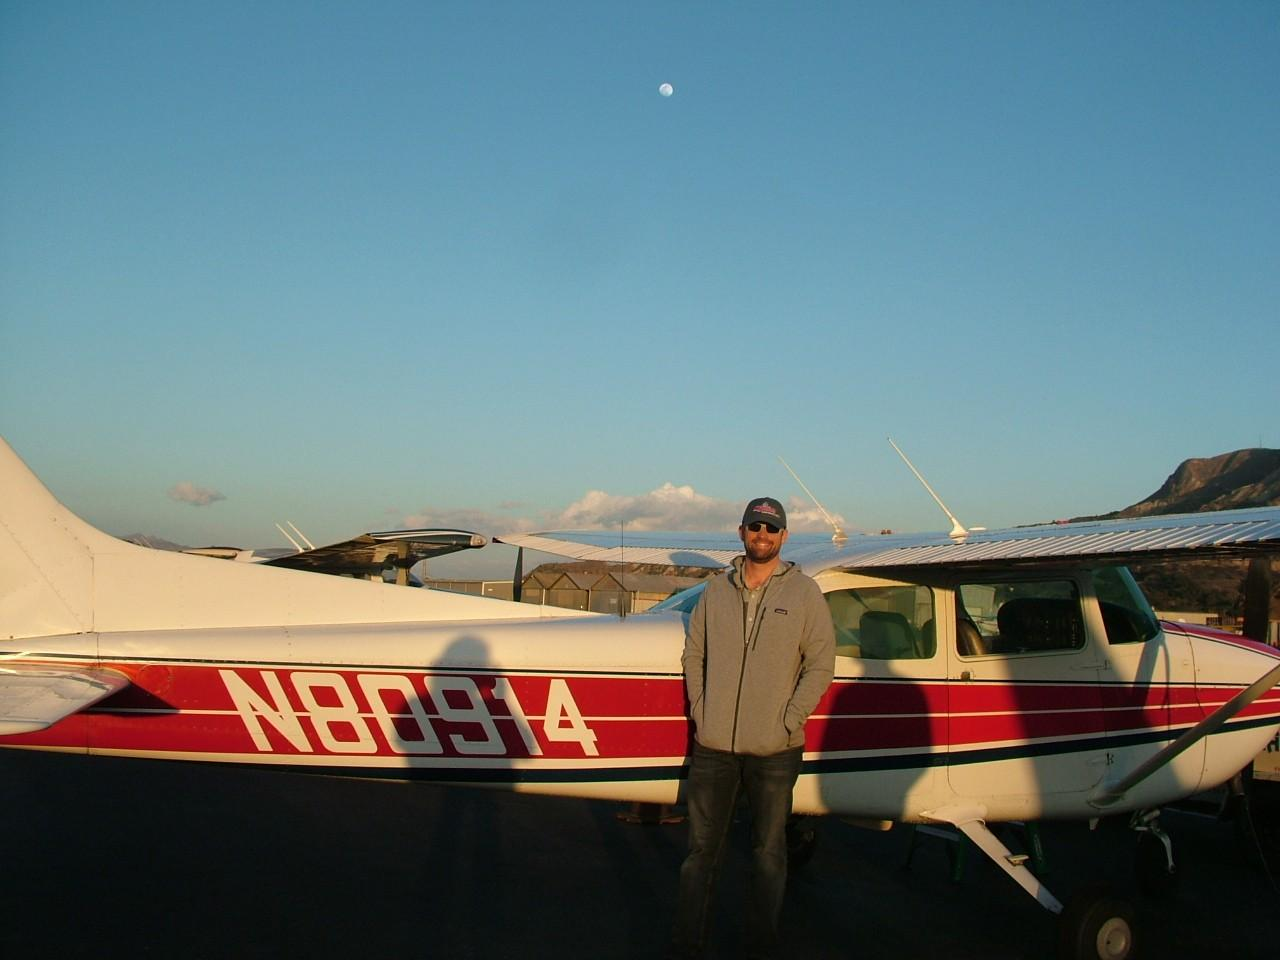 First Solo - Lawrence Parkhill